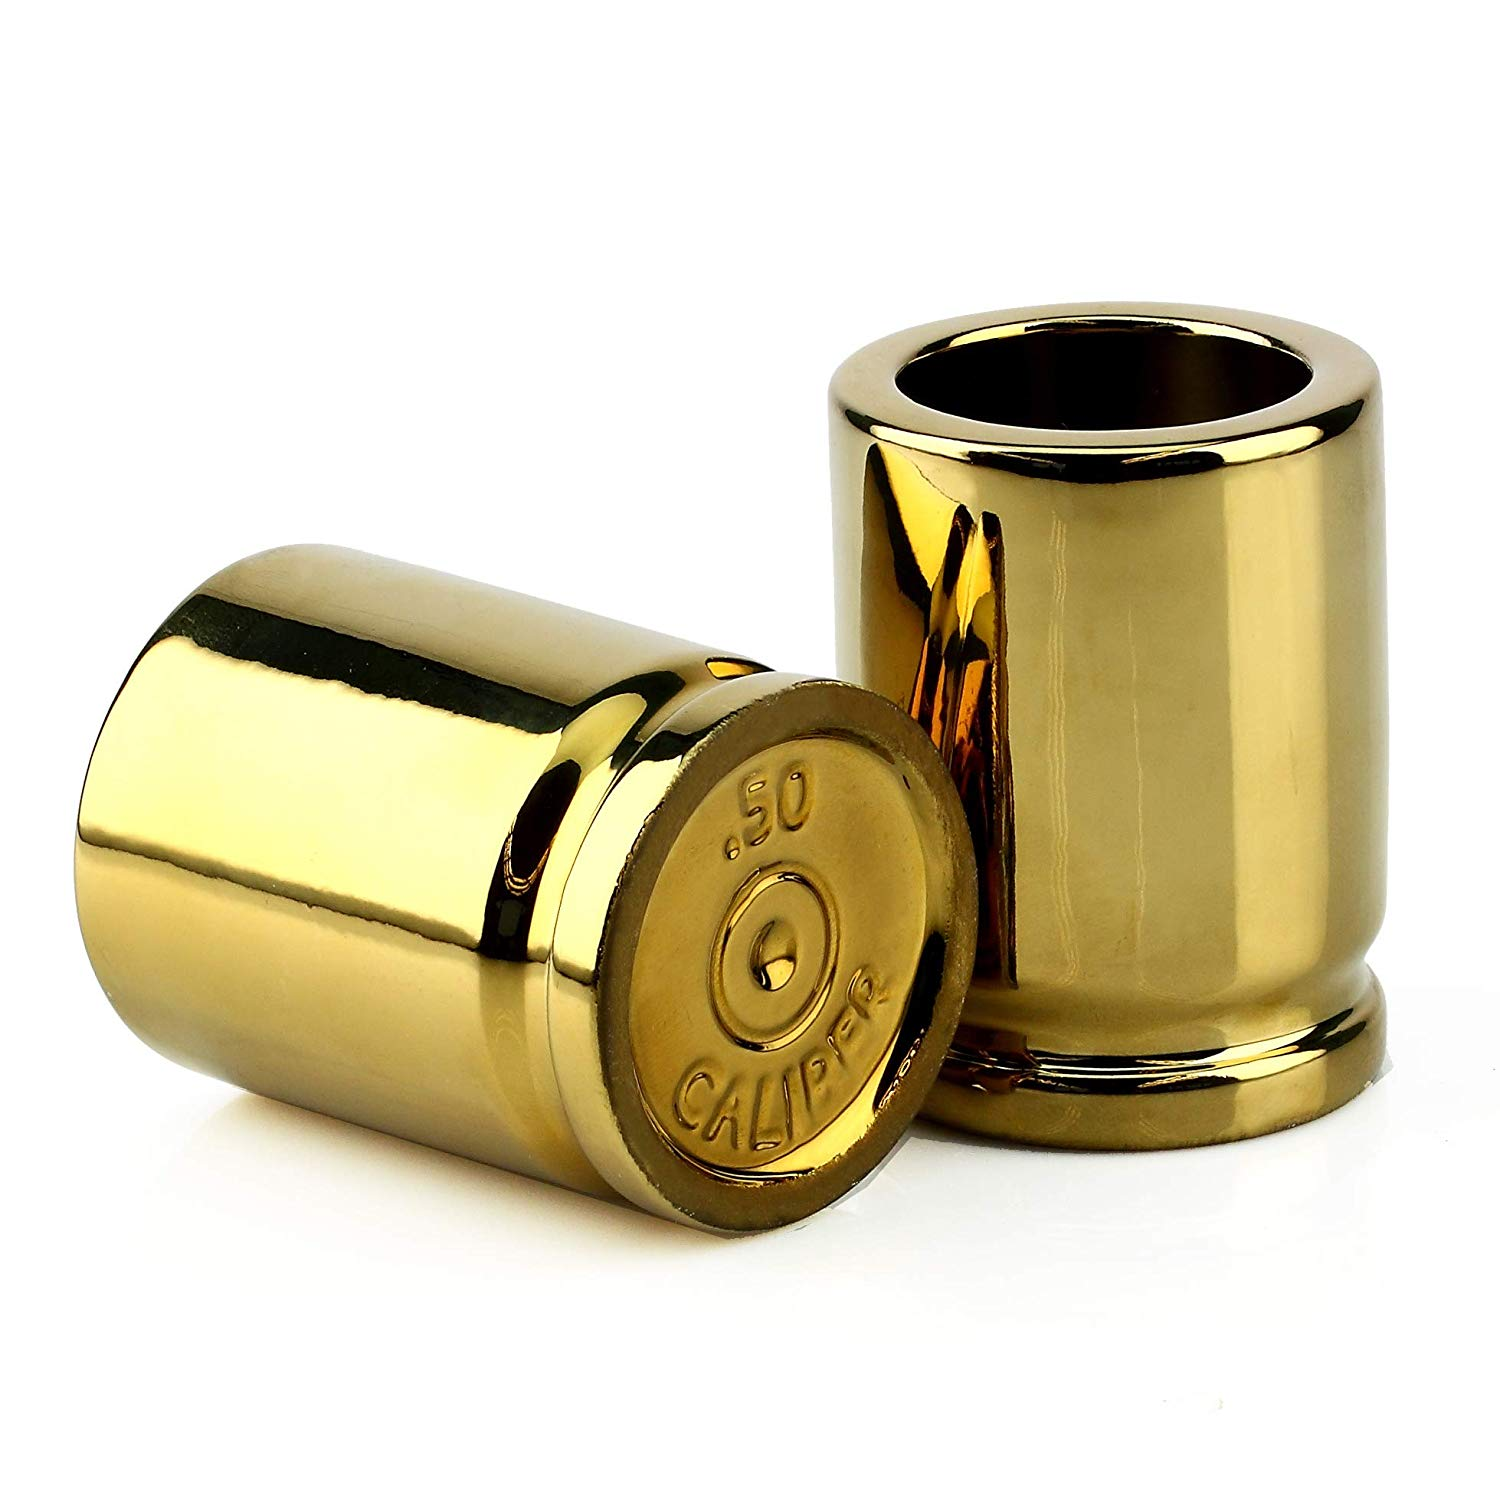 50 Caliber Shot Glasses 2